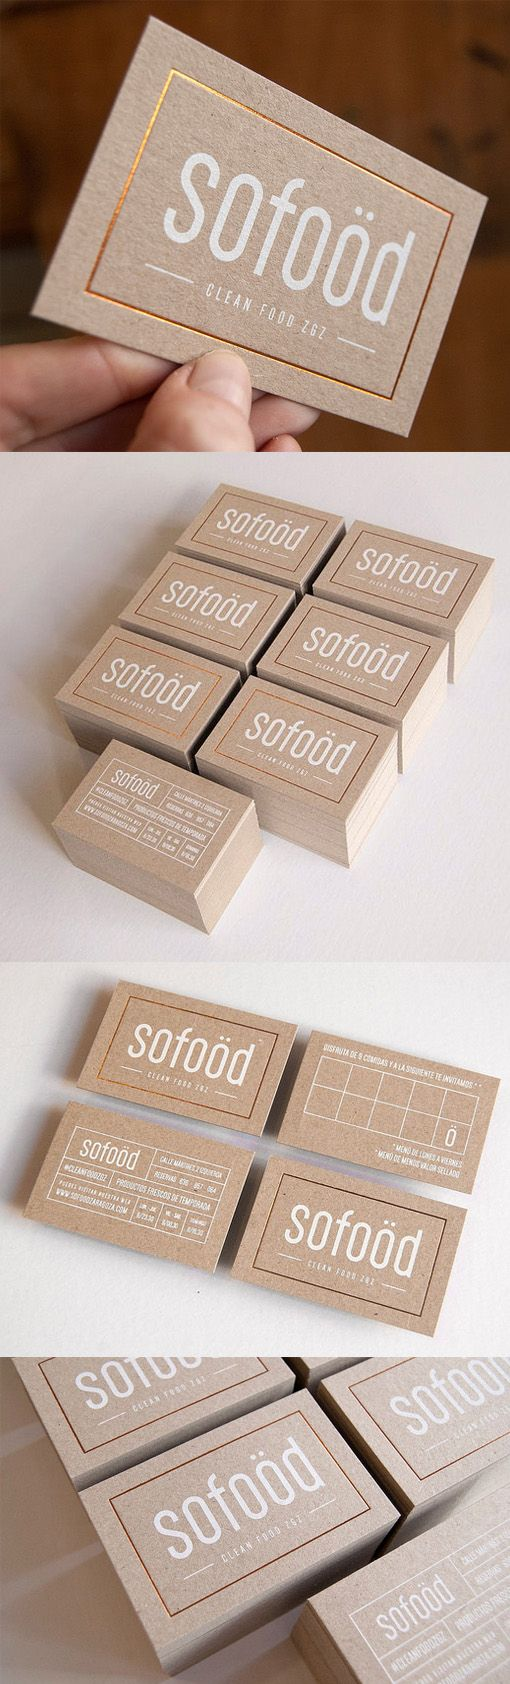 800 Best Un Boring Business Cards Images On Pinterest Business